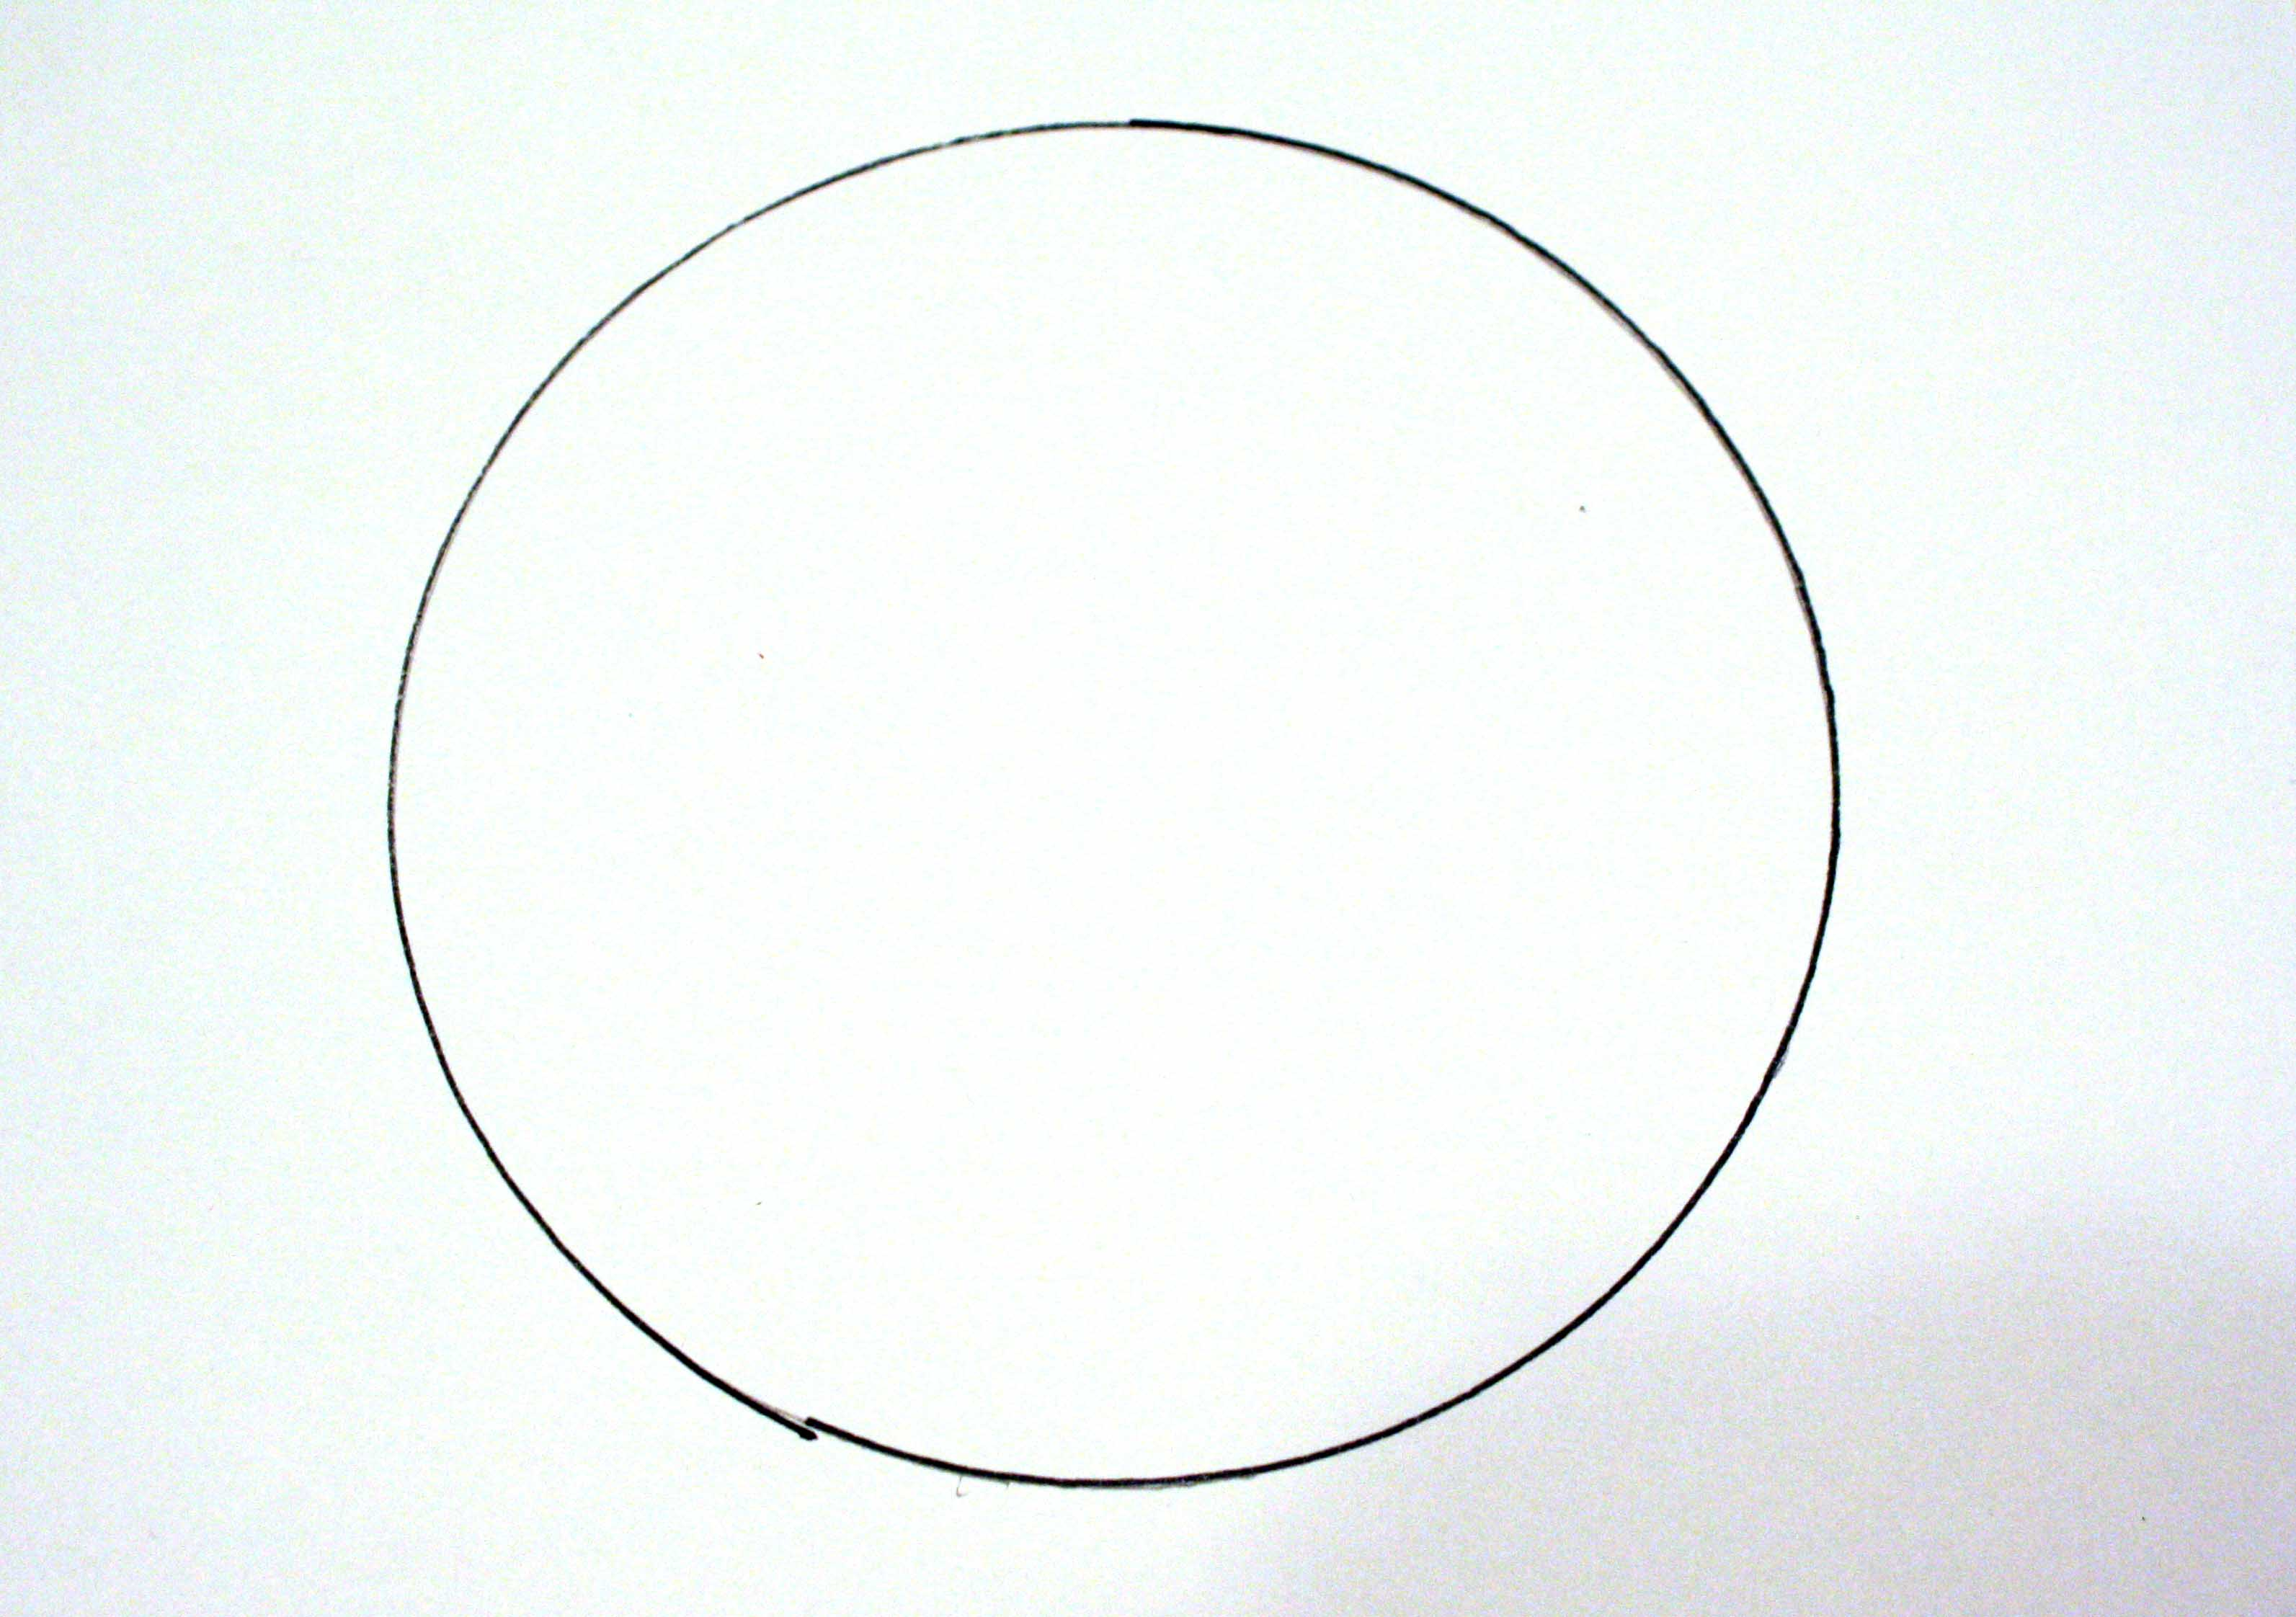 hrml5 how to draw circle